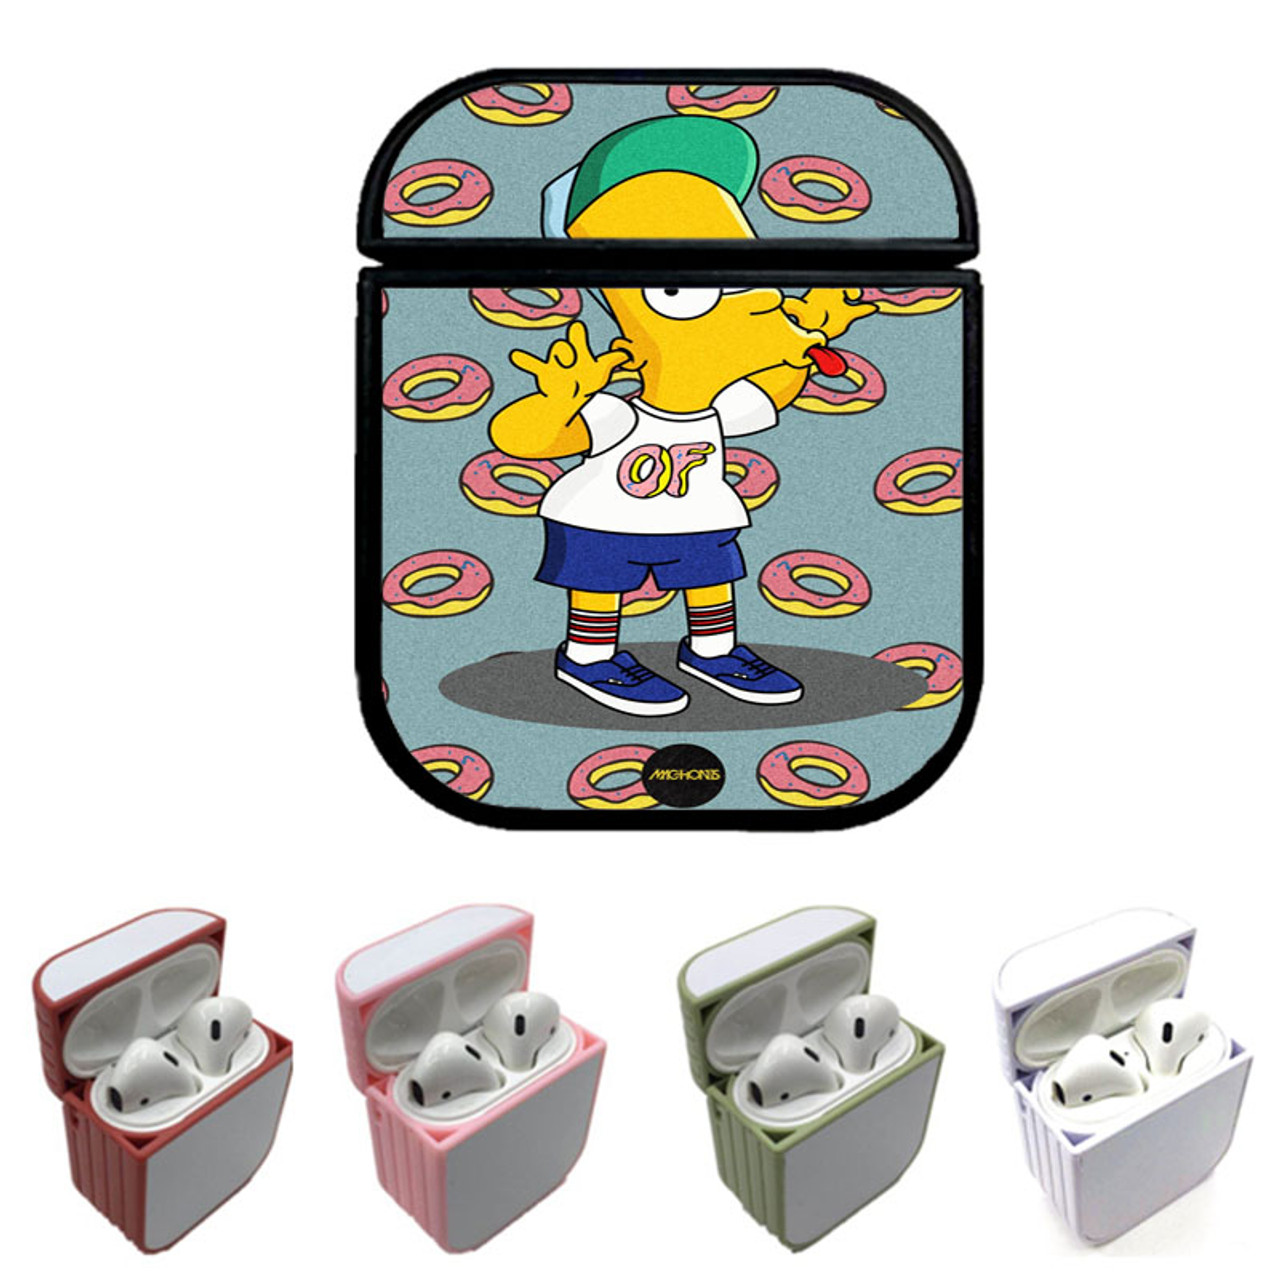 Of Supreme Bart Simpsons Custom Airpods Case Coverszy